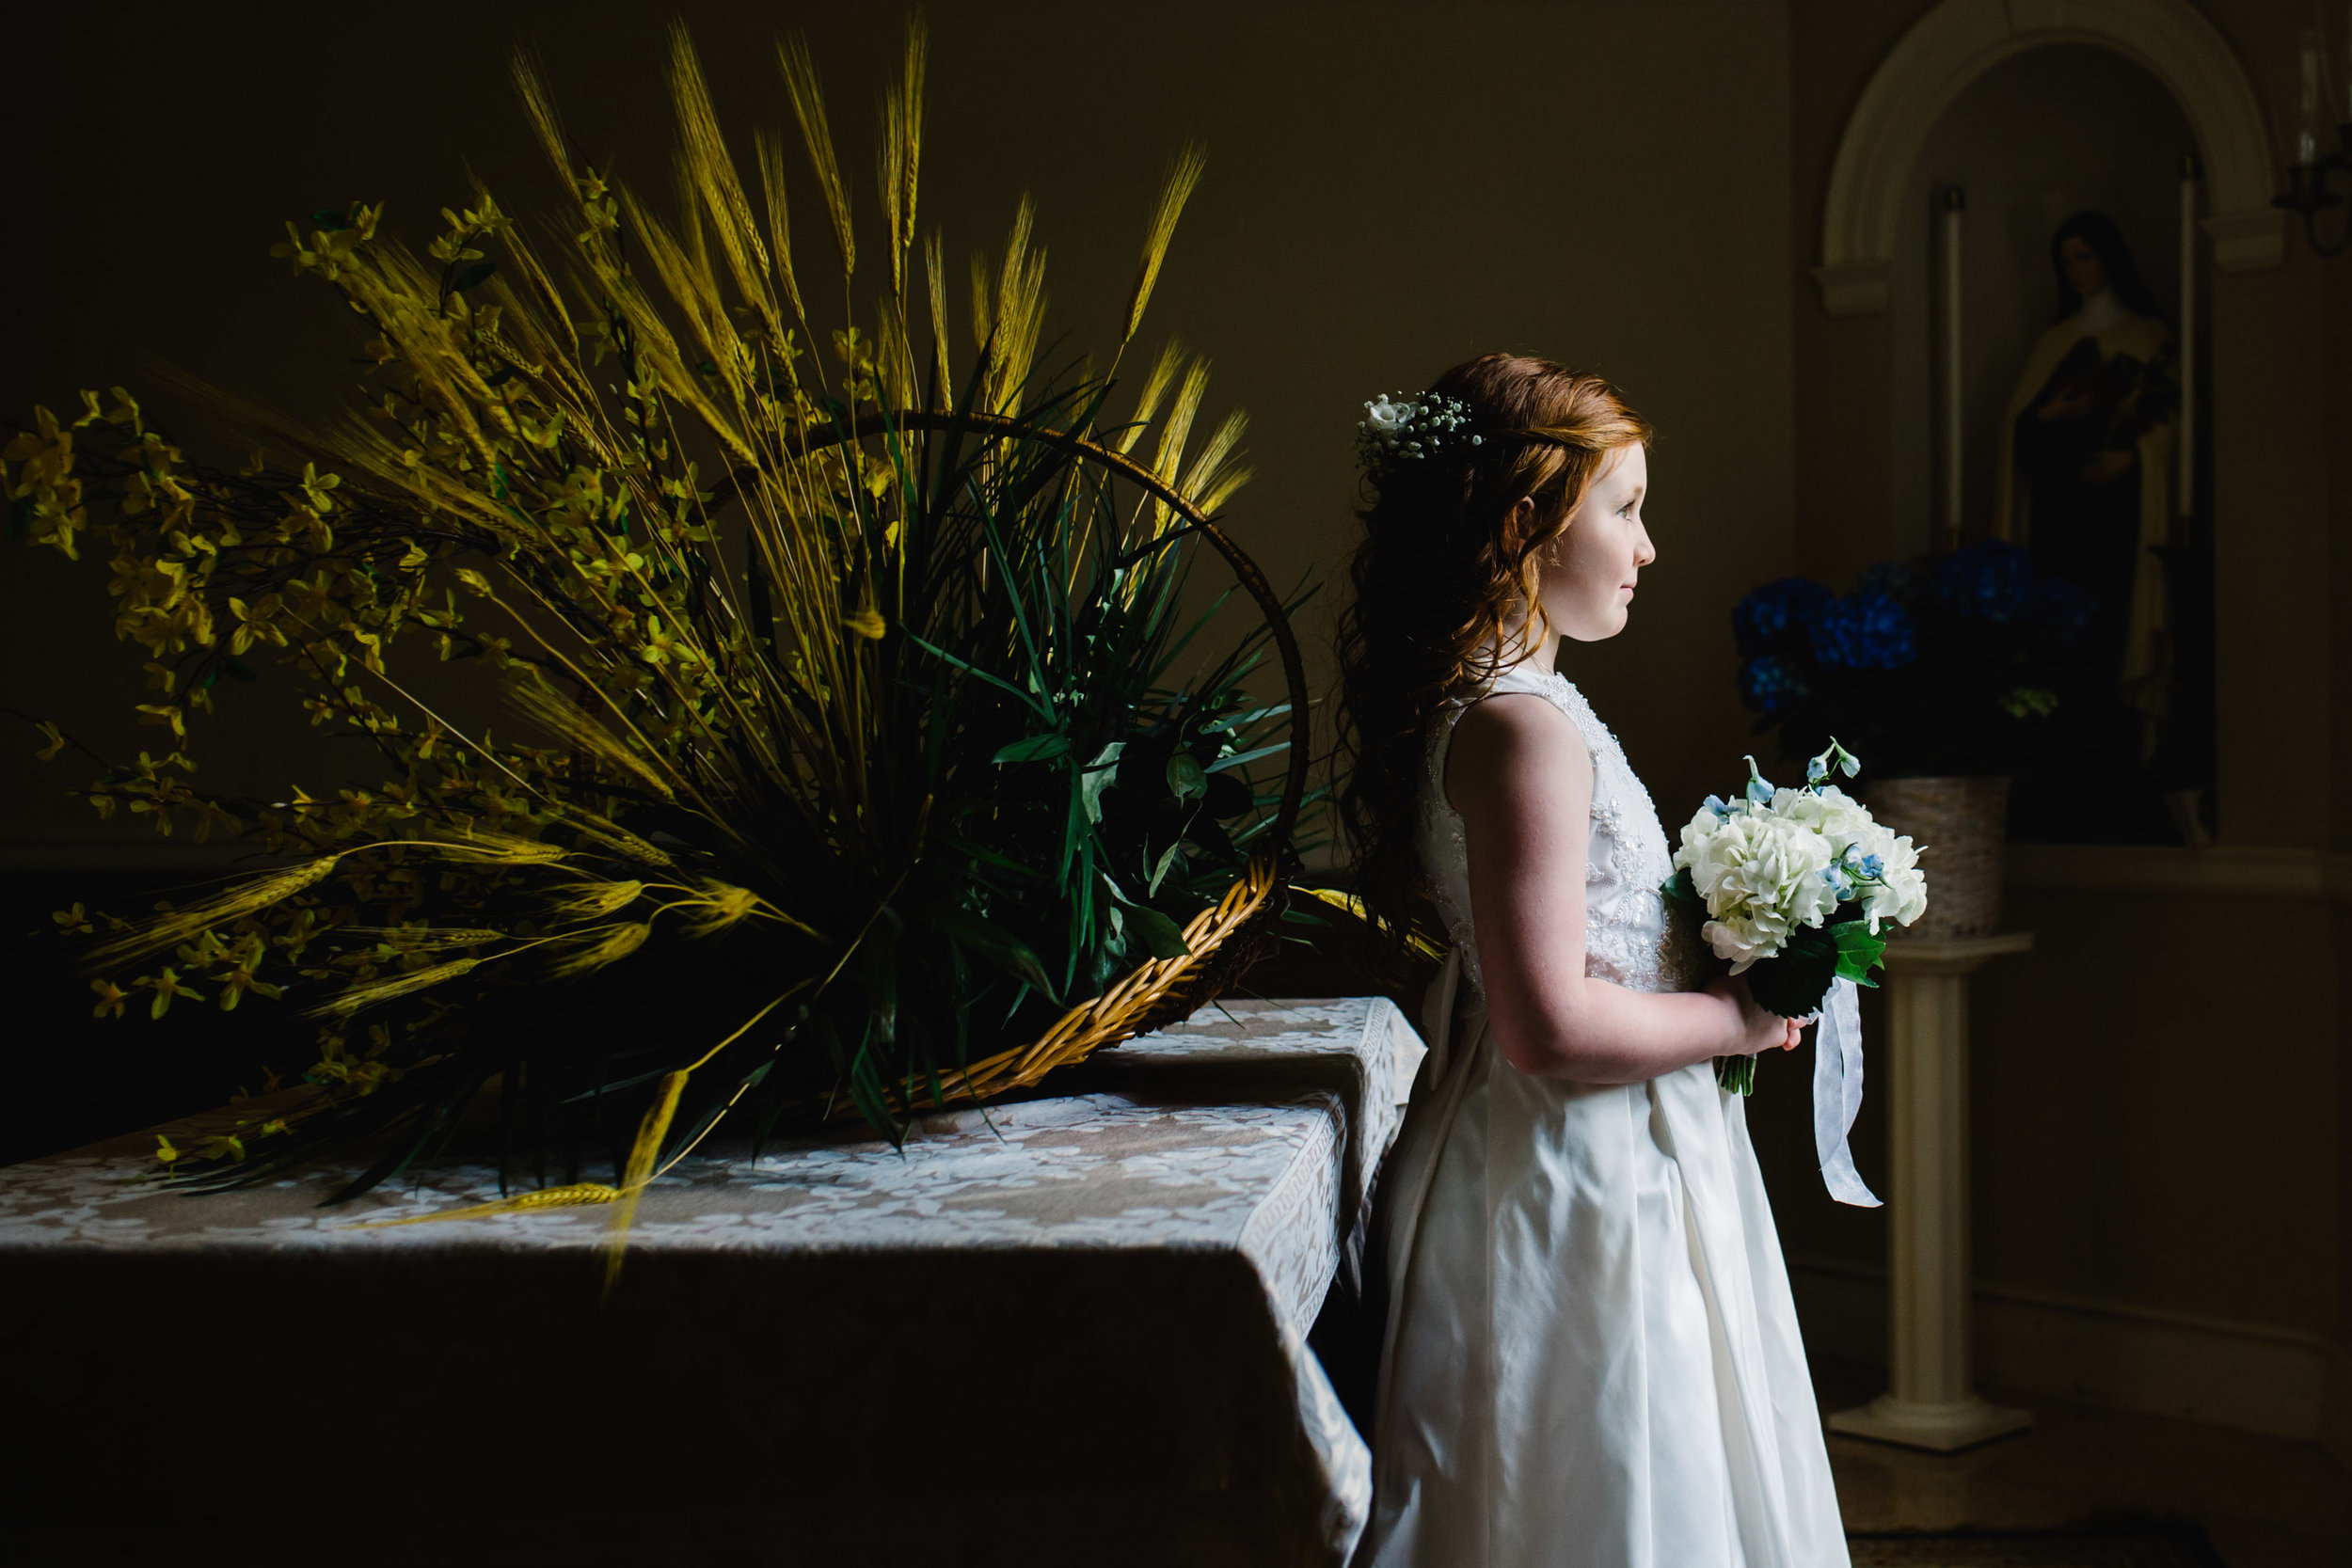 first communion portrait session at church | Jennifer Tippett Photography